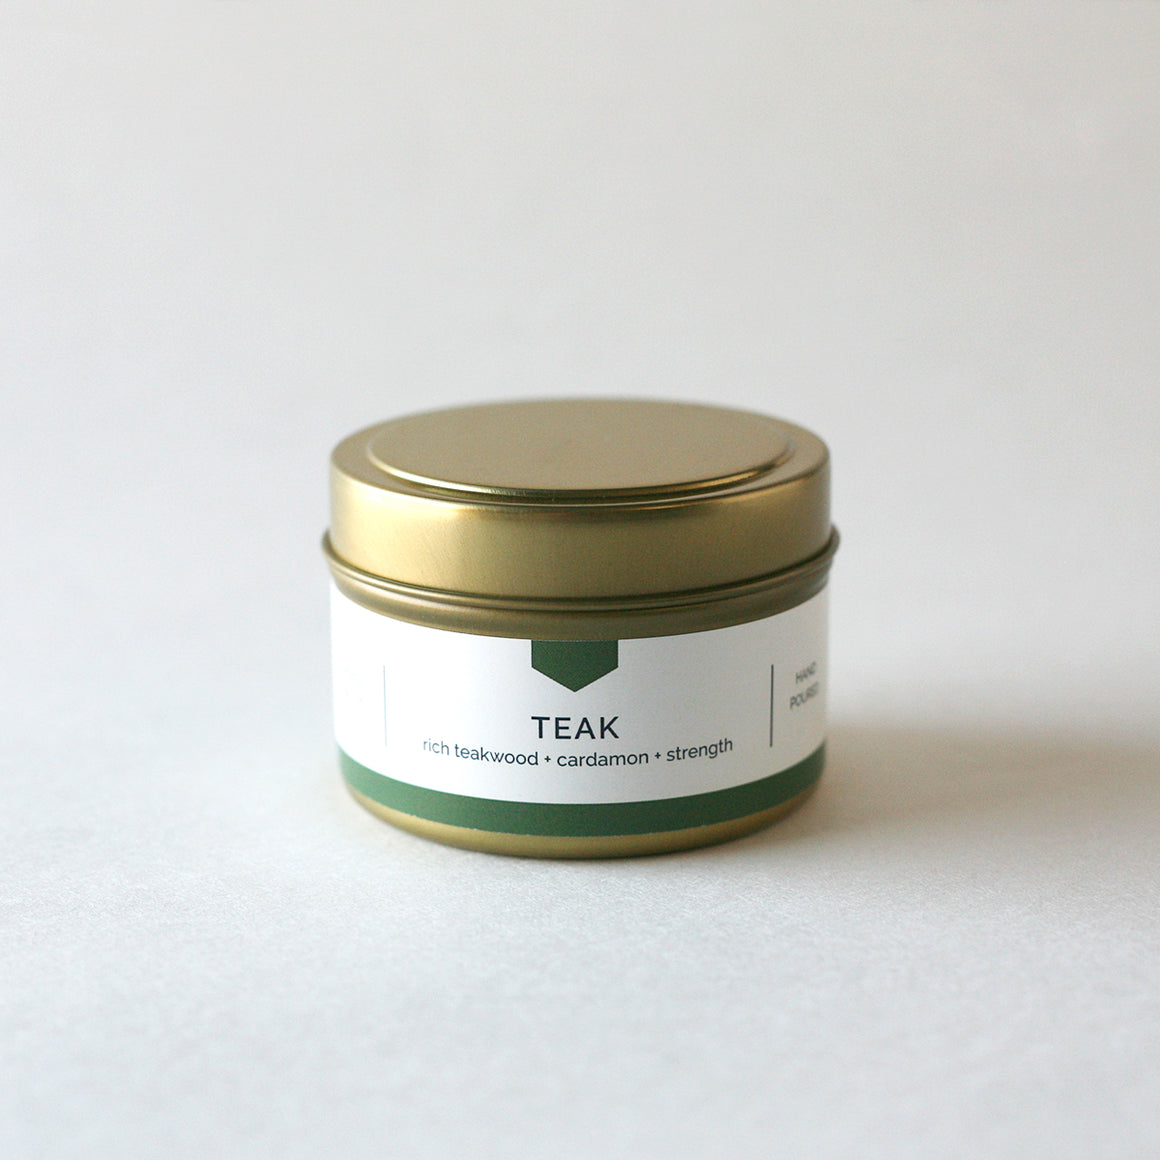 TEAK 4 oz Travel Tin Soy Candle